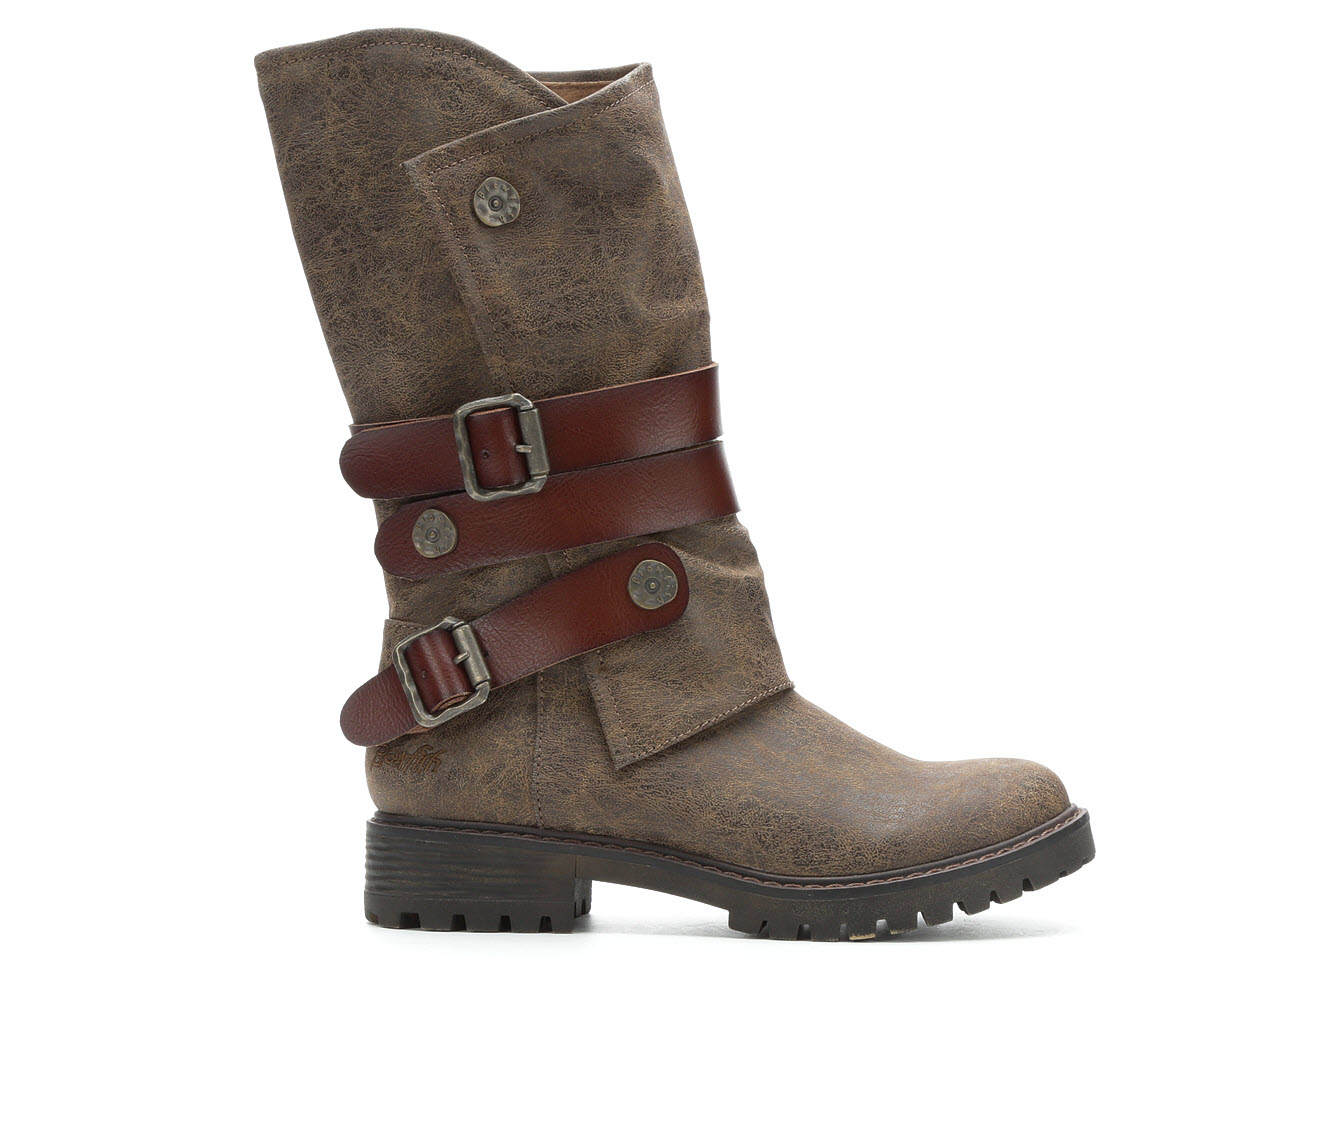 Blowfish Malibu Rider Women's Boots (Brown - Faux Leather)